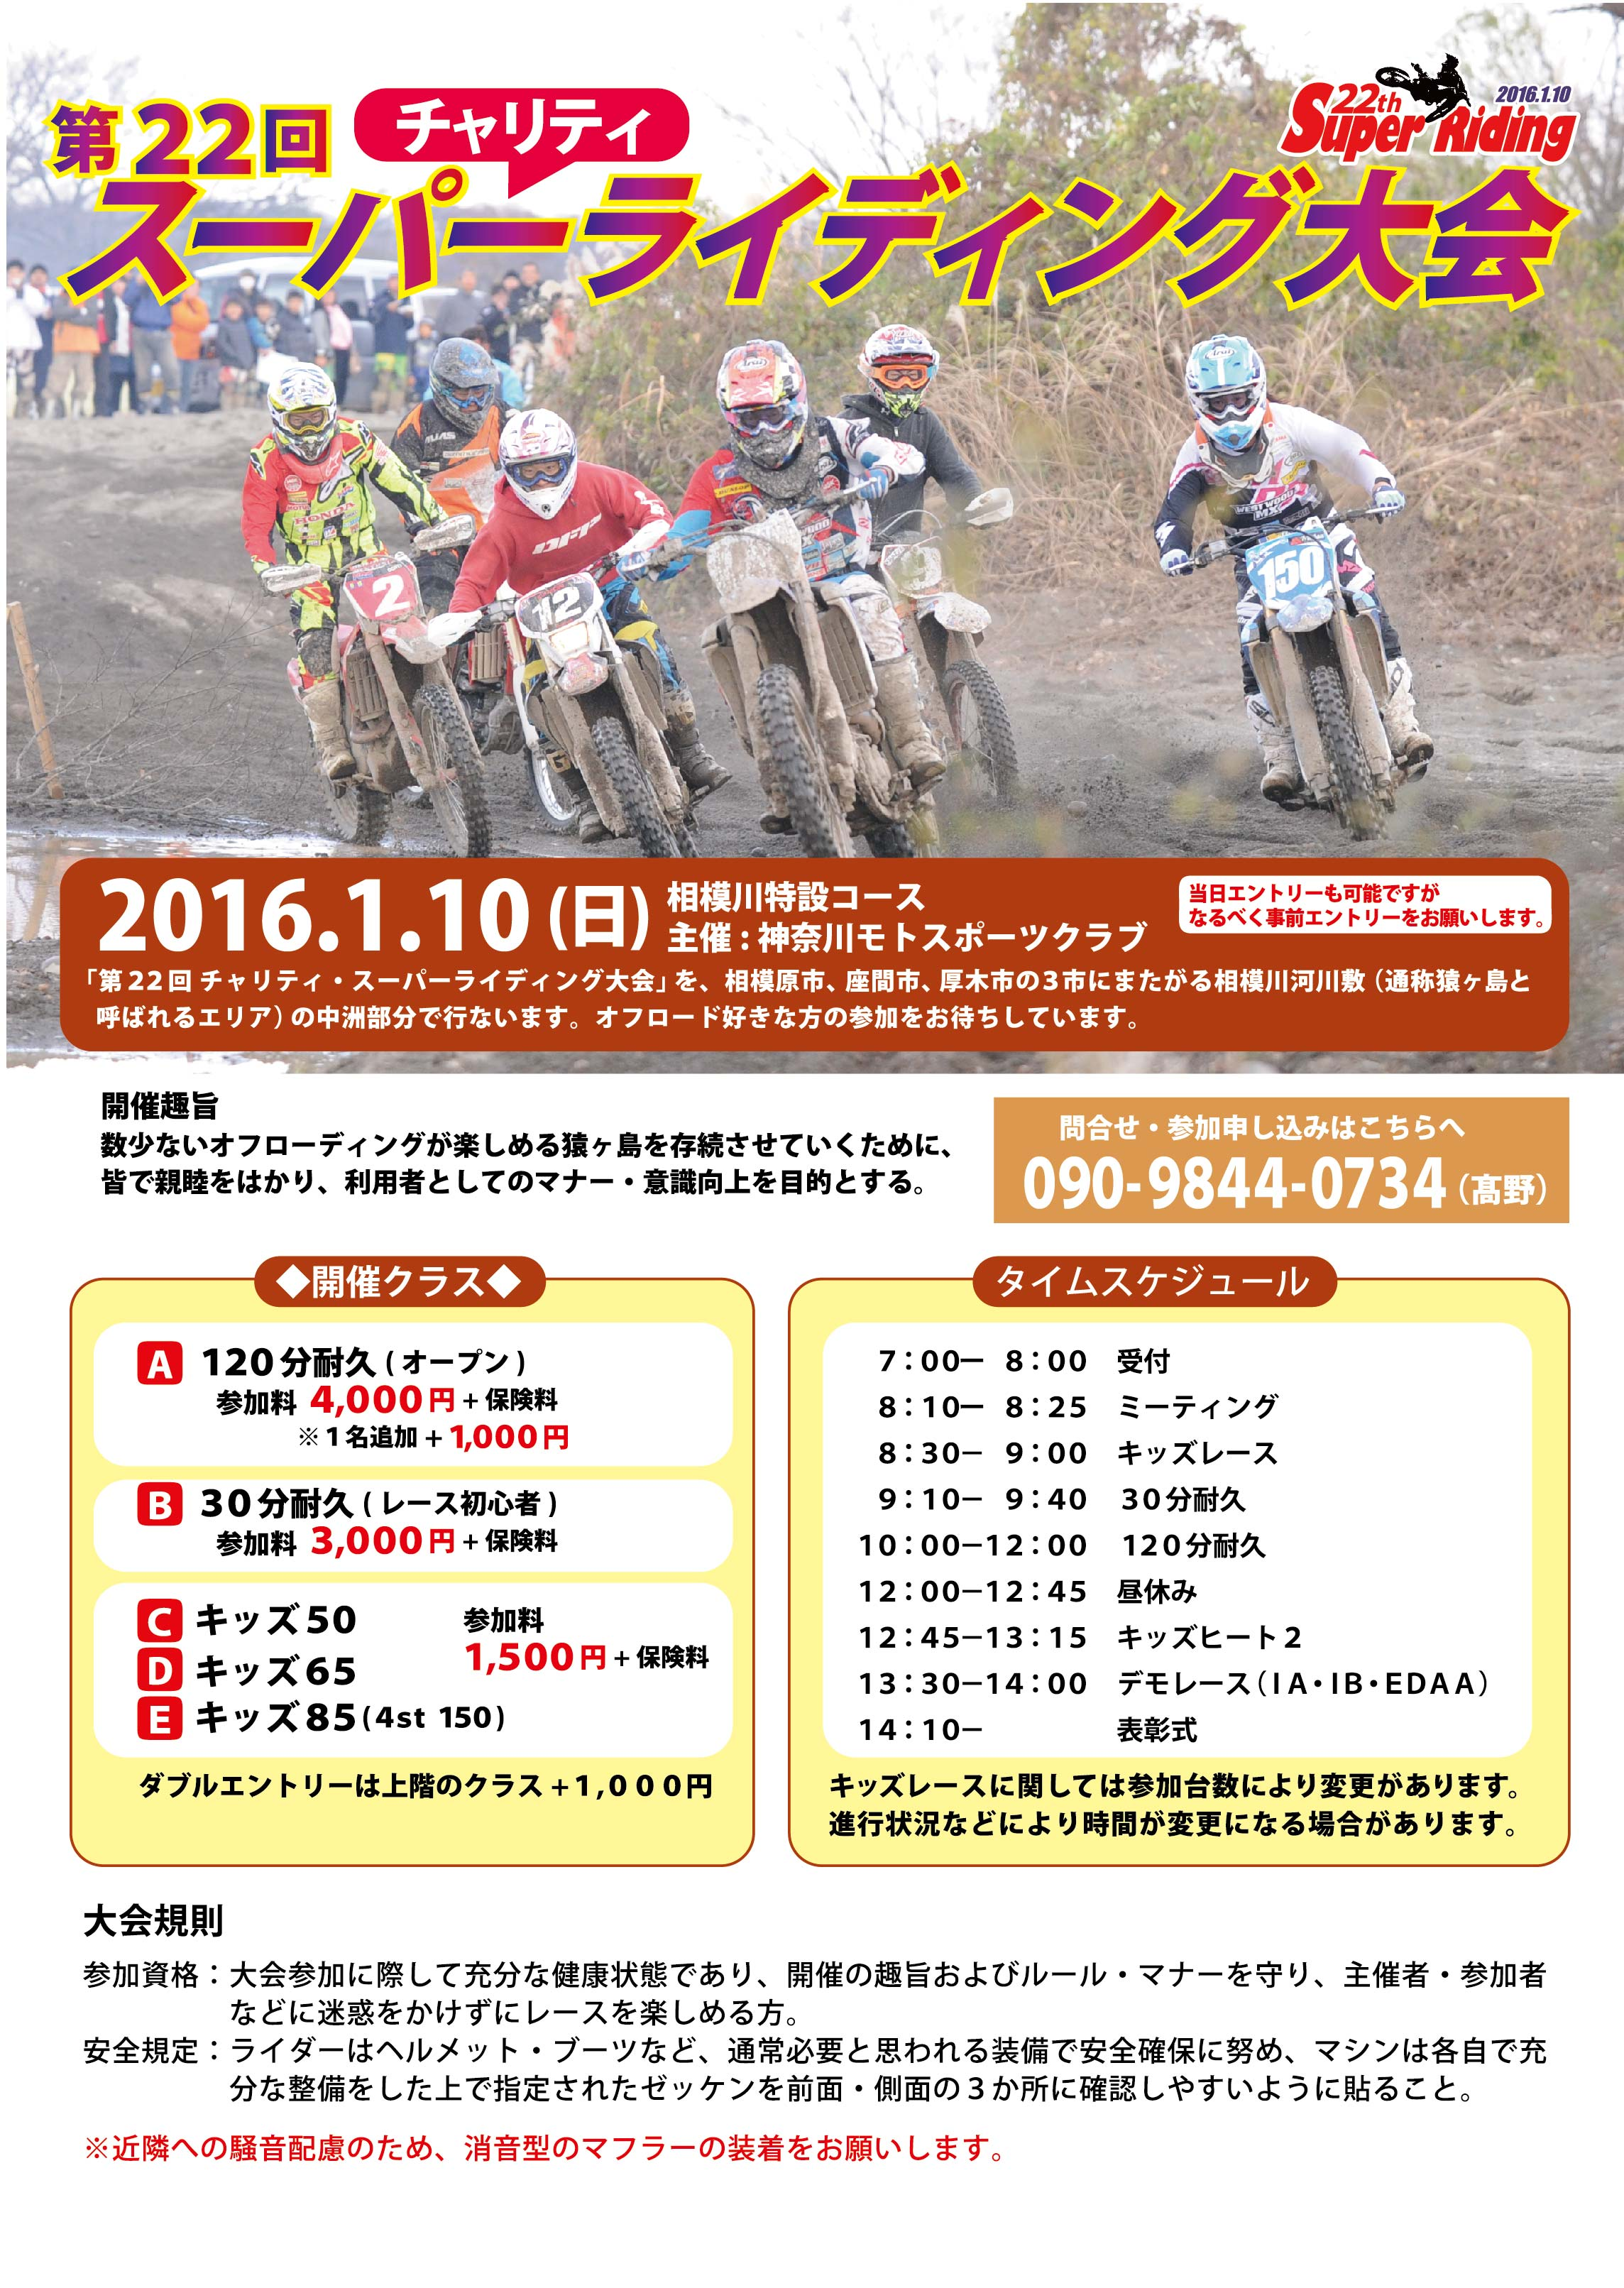 2016.srtaikai22nd